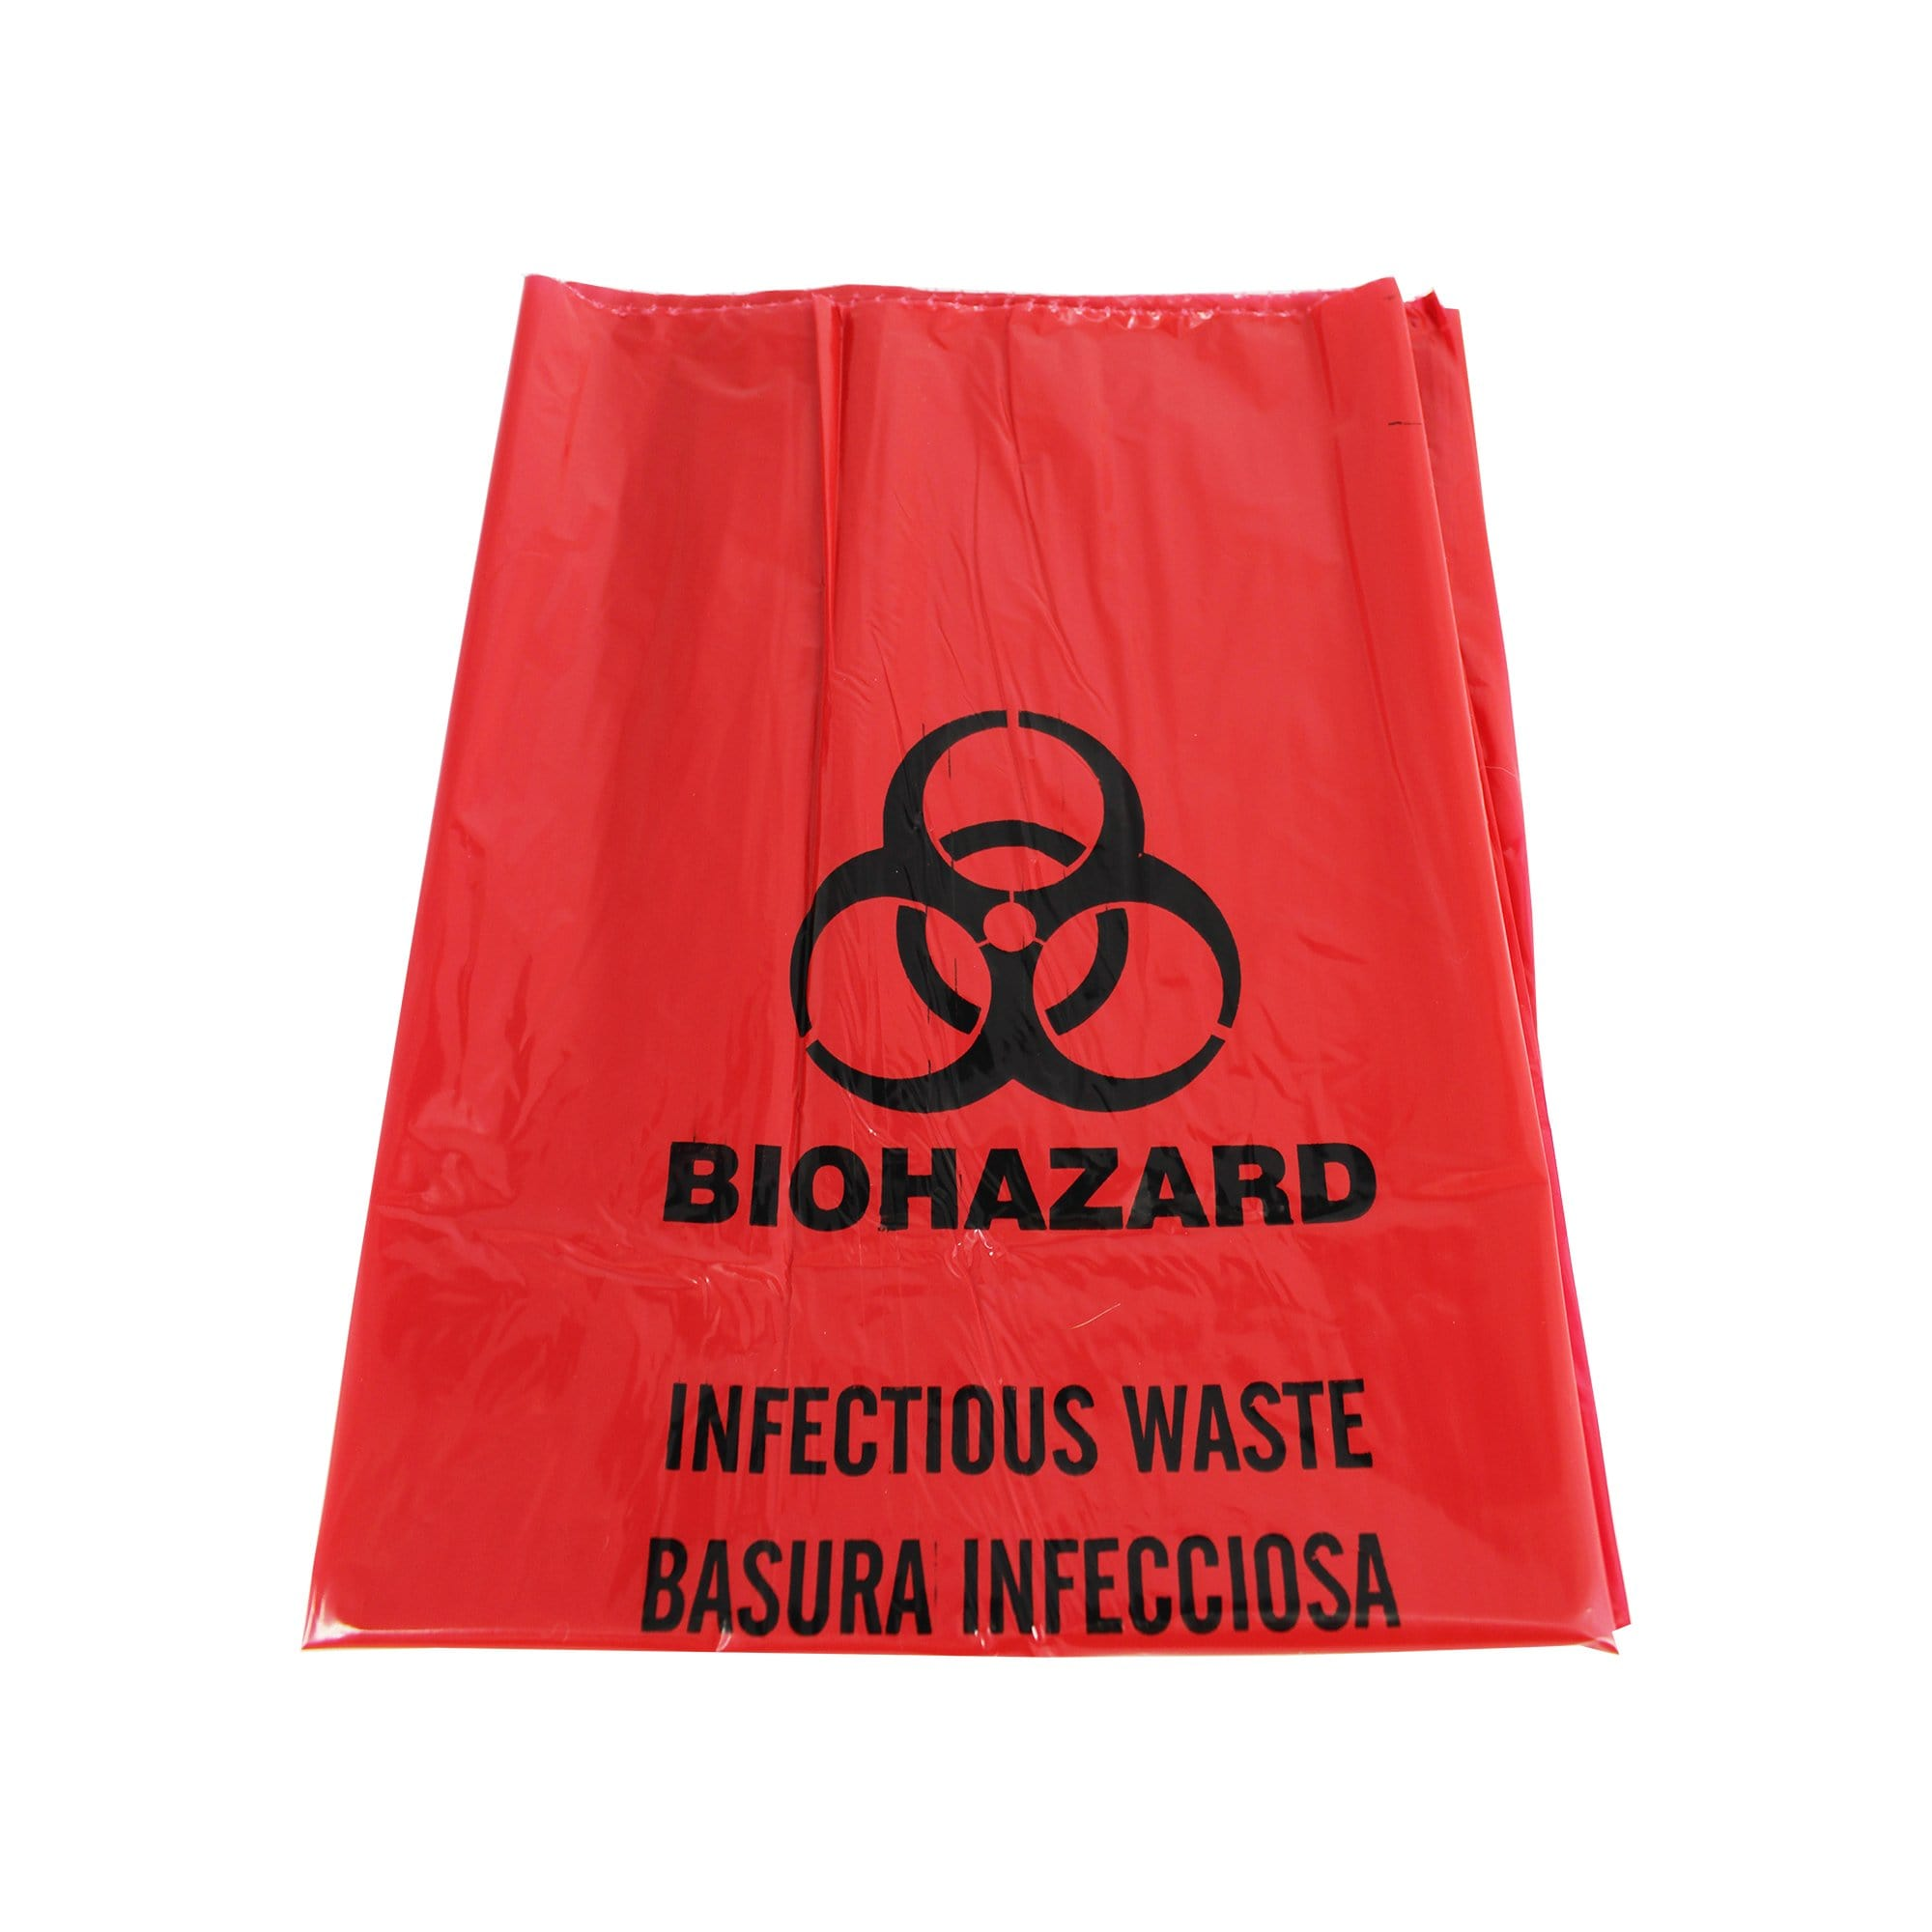 Biohazard Bag, Red, 1.2MIL 7-10gal